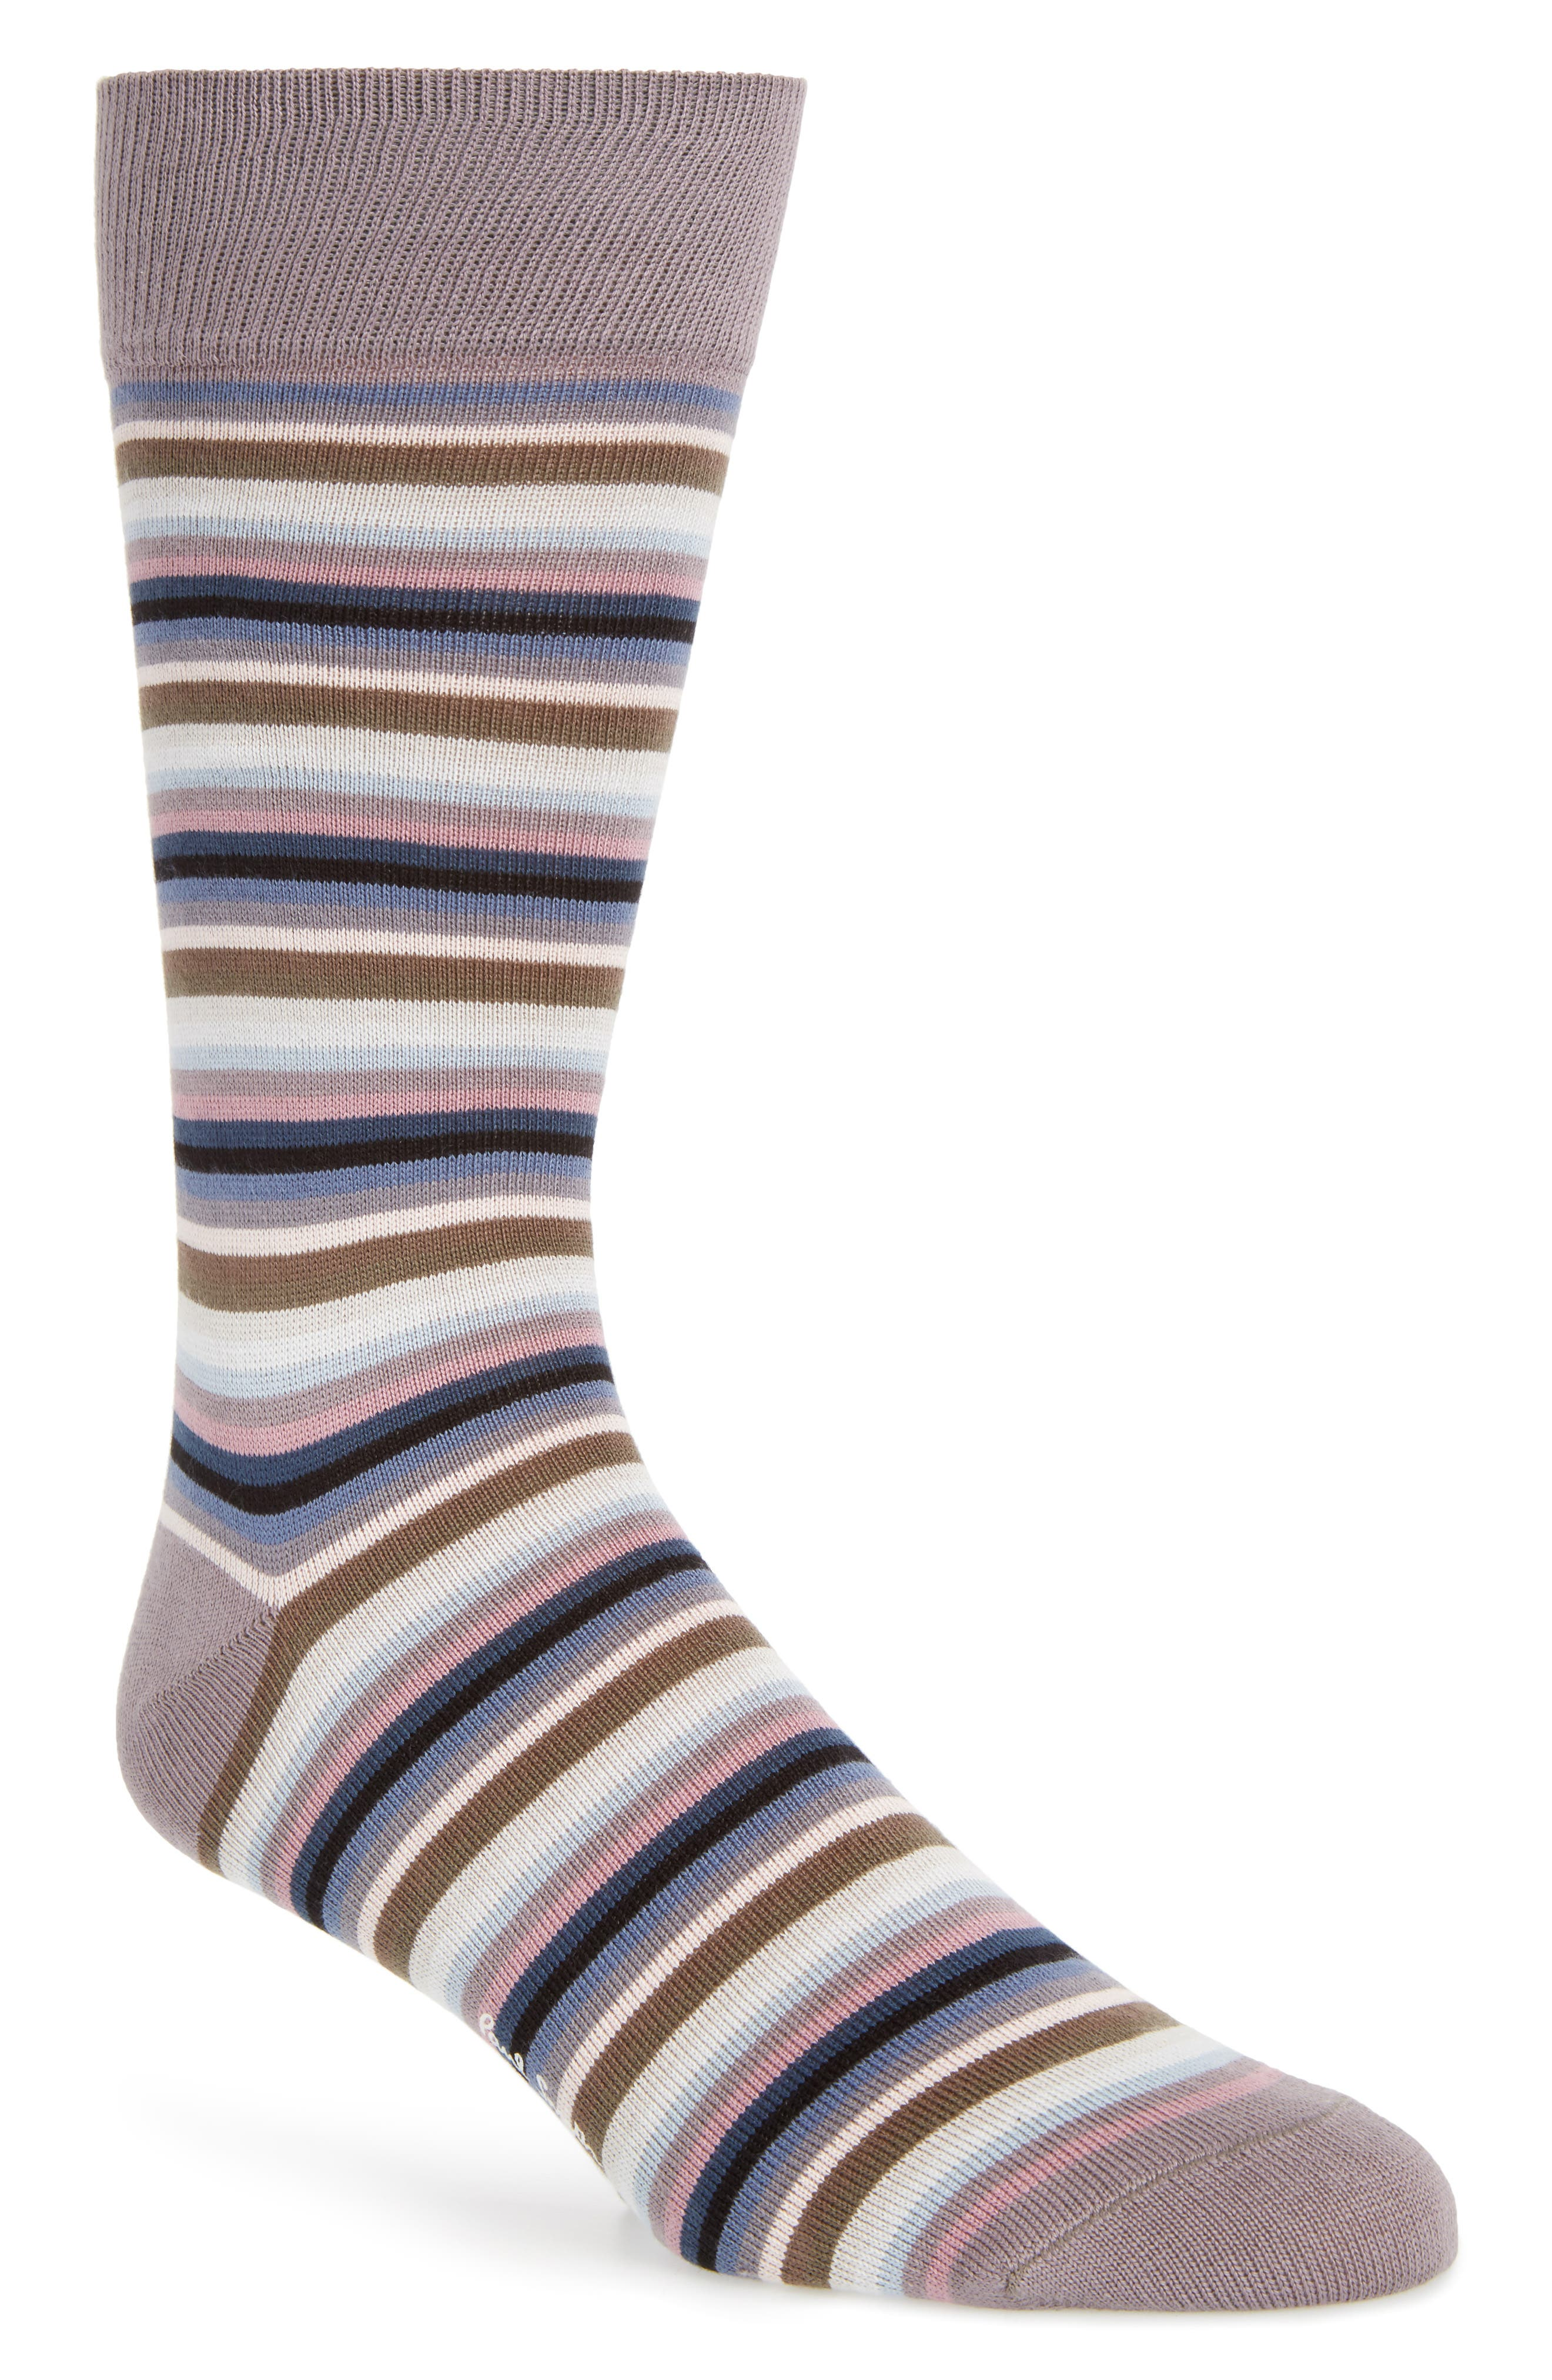 Degradé Stripe Socks,                             Main thumbnail 1, color,                             020